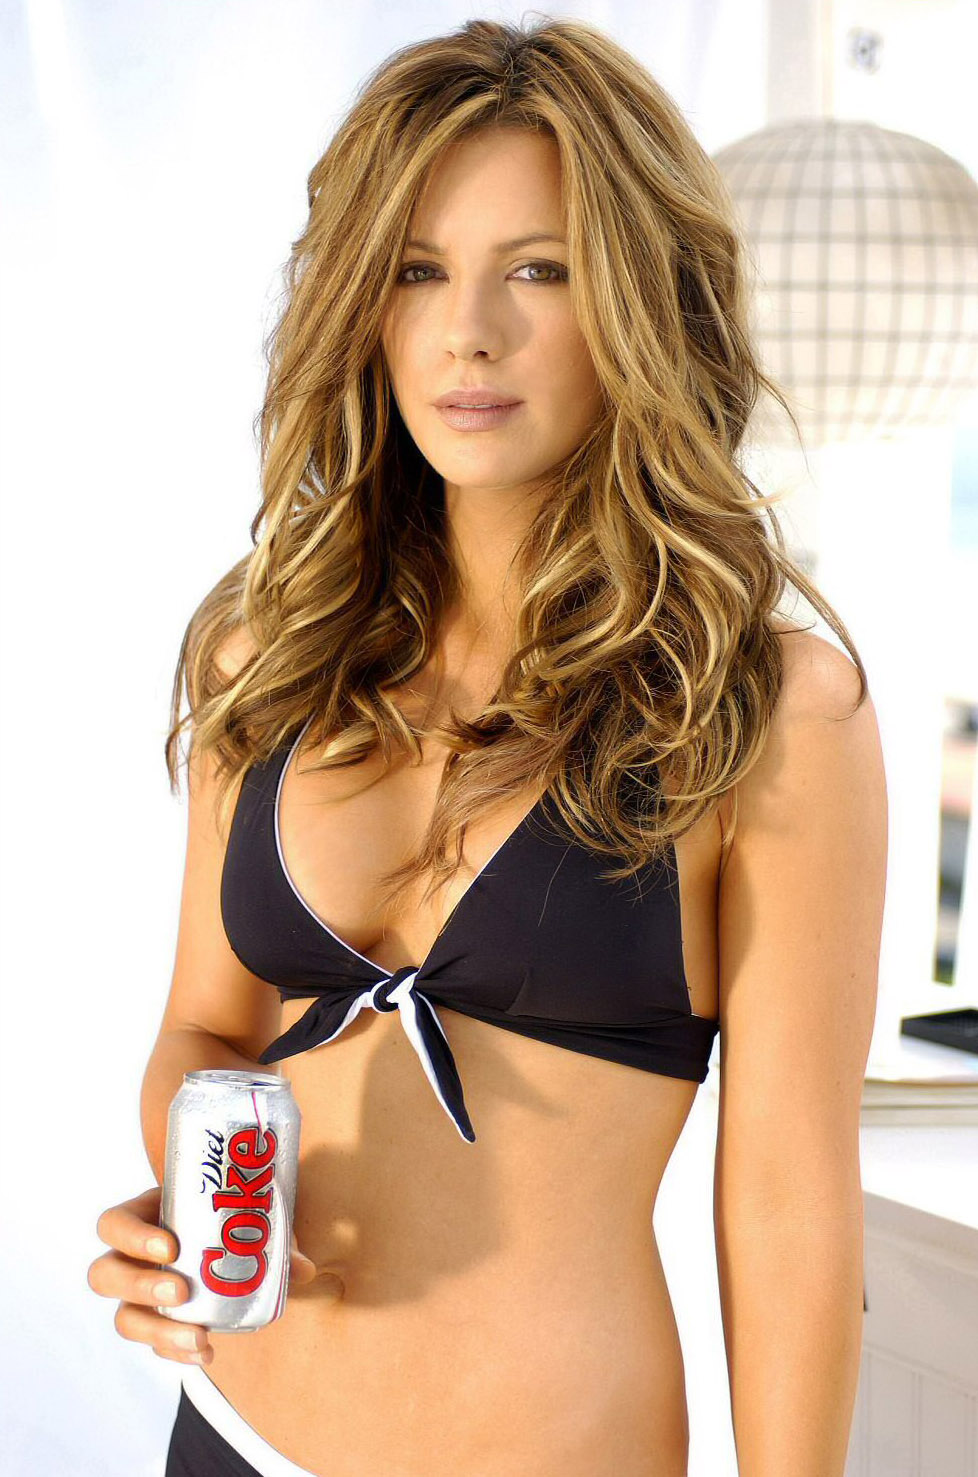 Kate Beckinsale hot picture